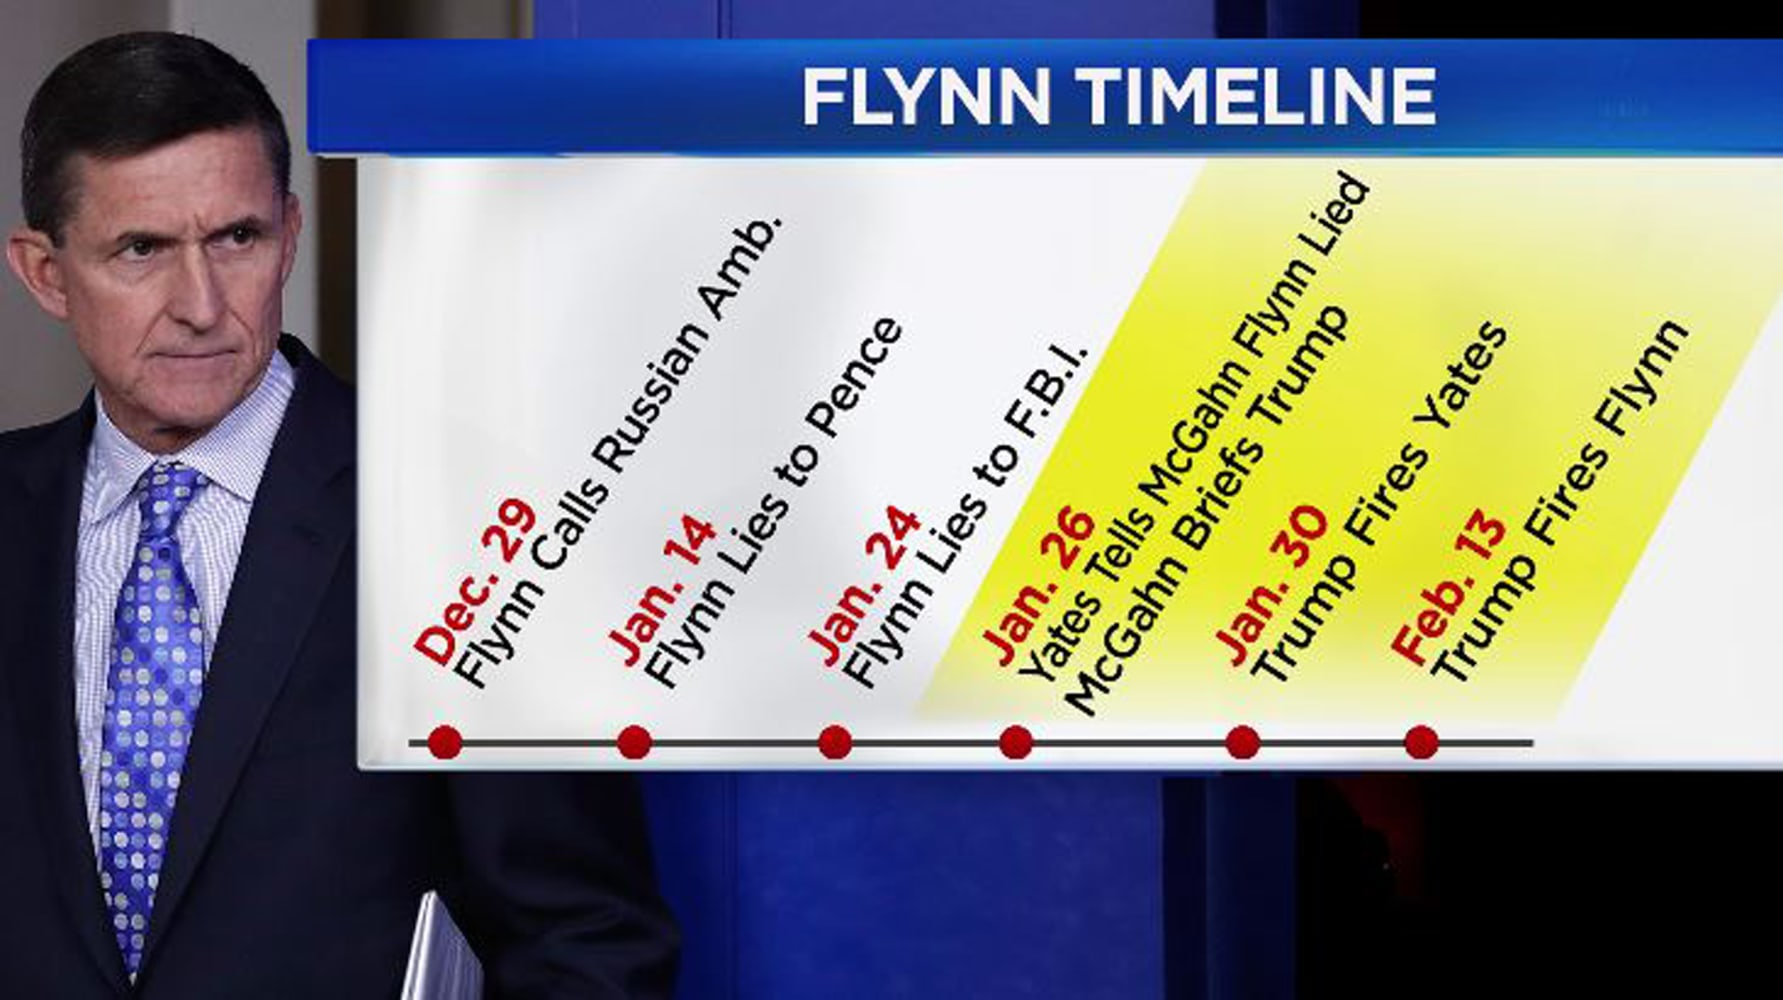 Focus on Flynn, Trump timeline suggests Mueller focusing on obstruction of justice (nbcnews.com)